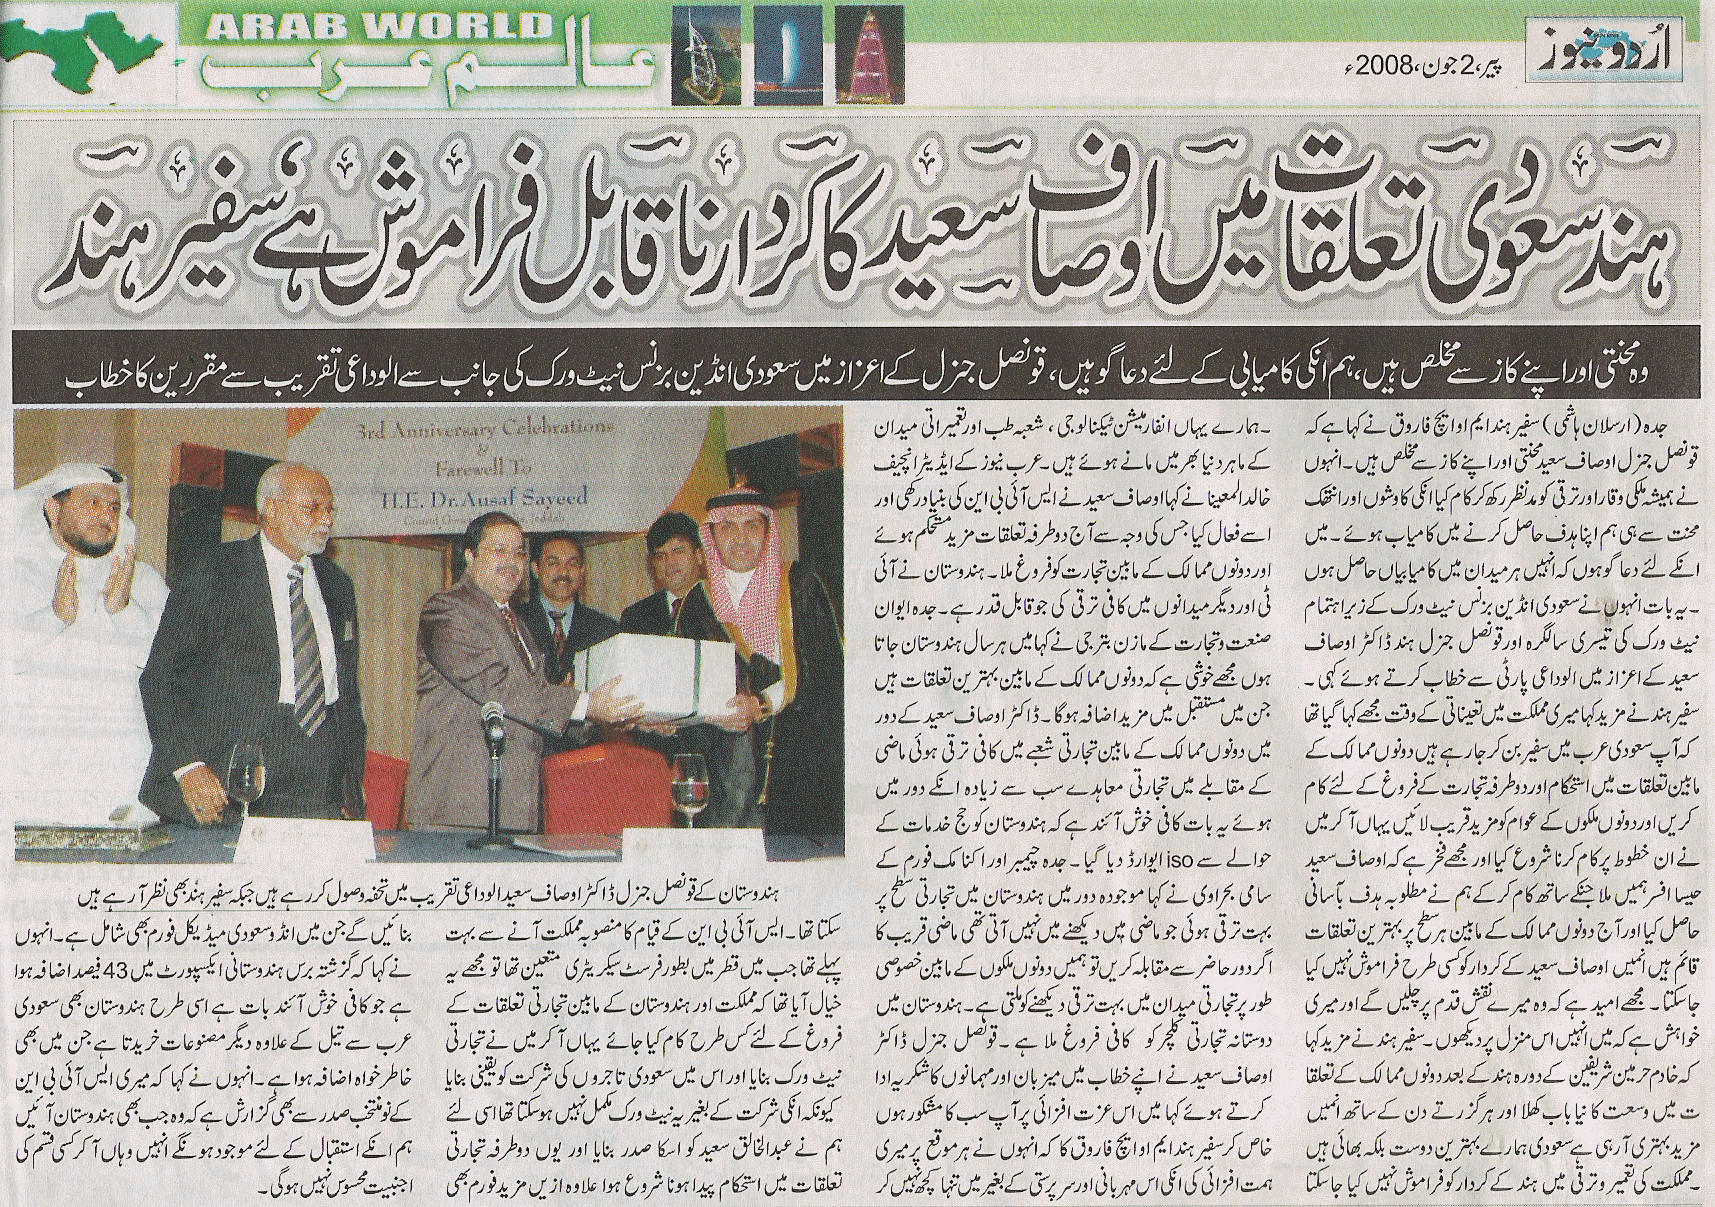 Farewell by SIBN - Urdu News, June 2, 2008